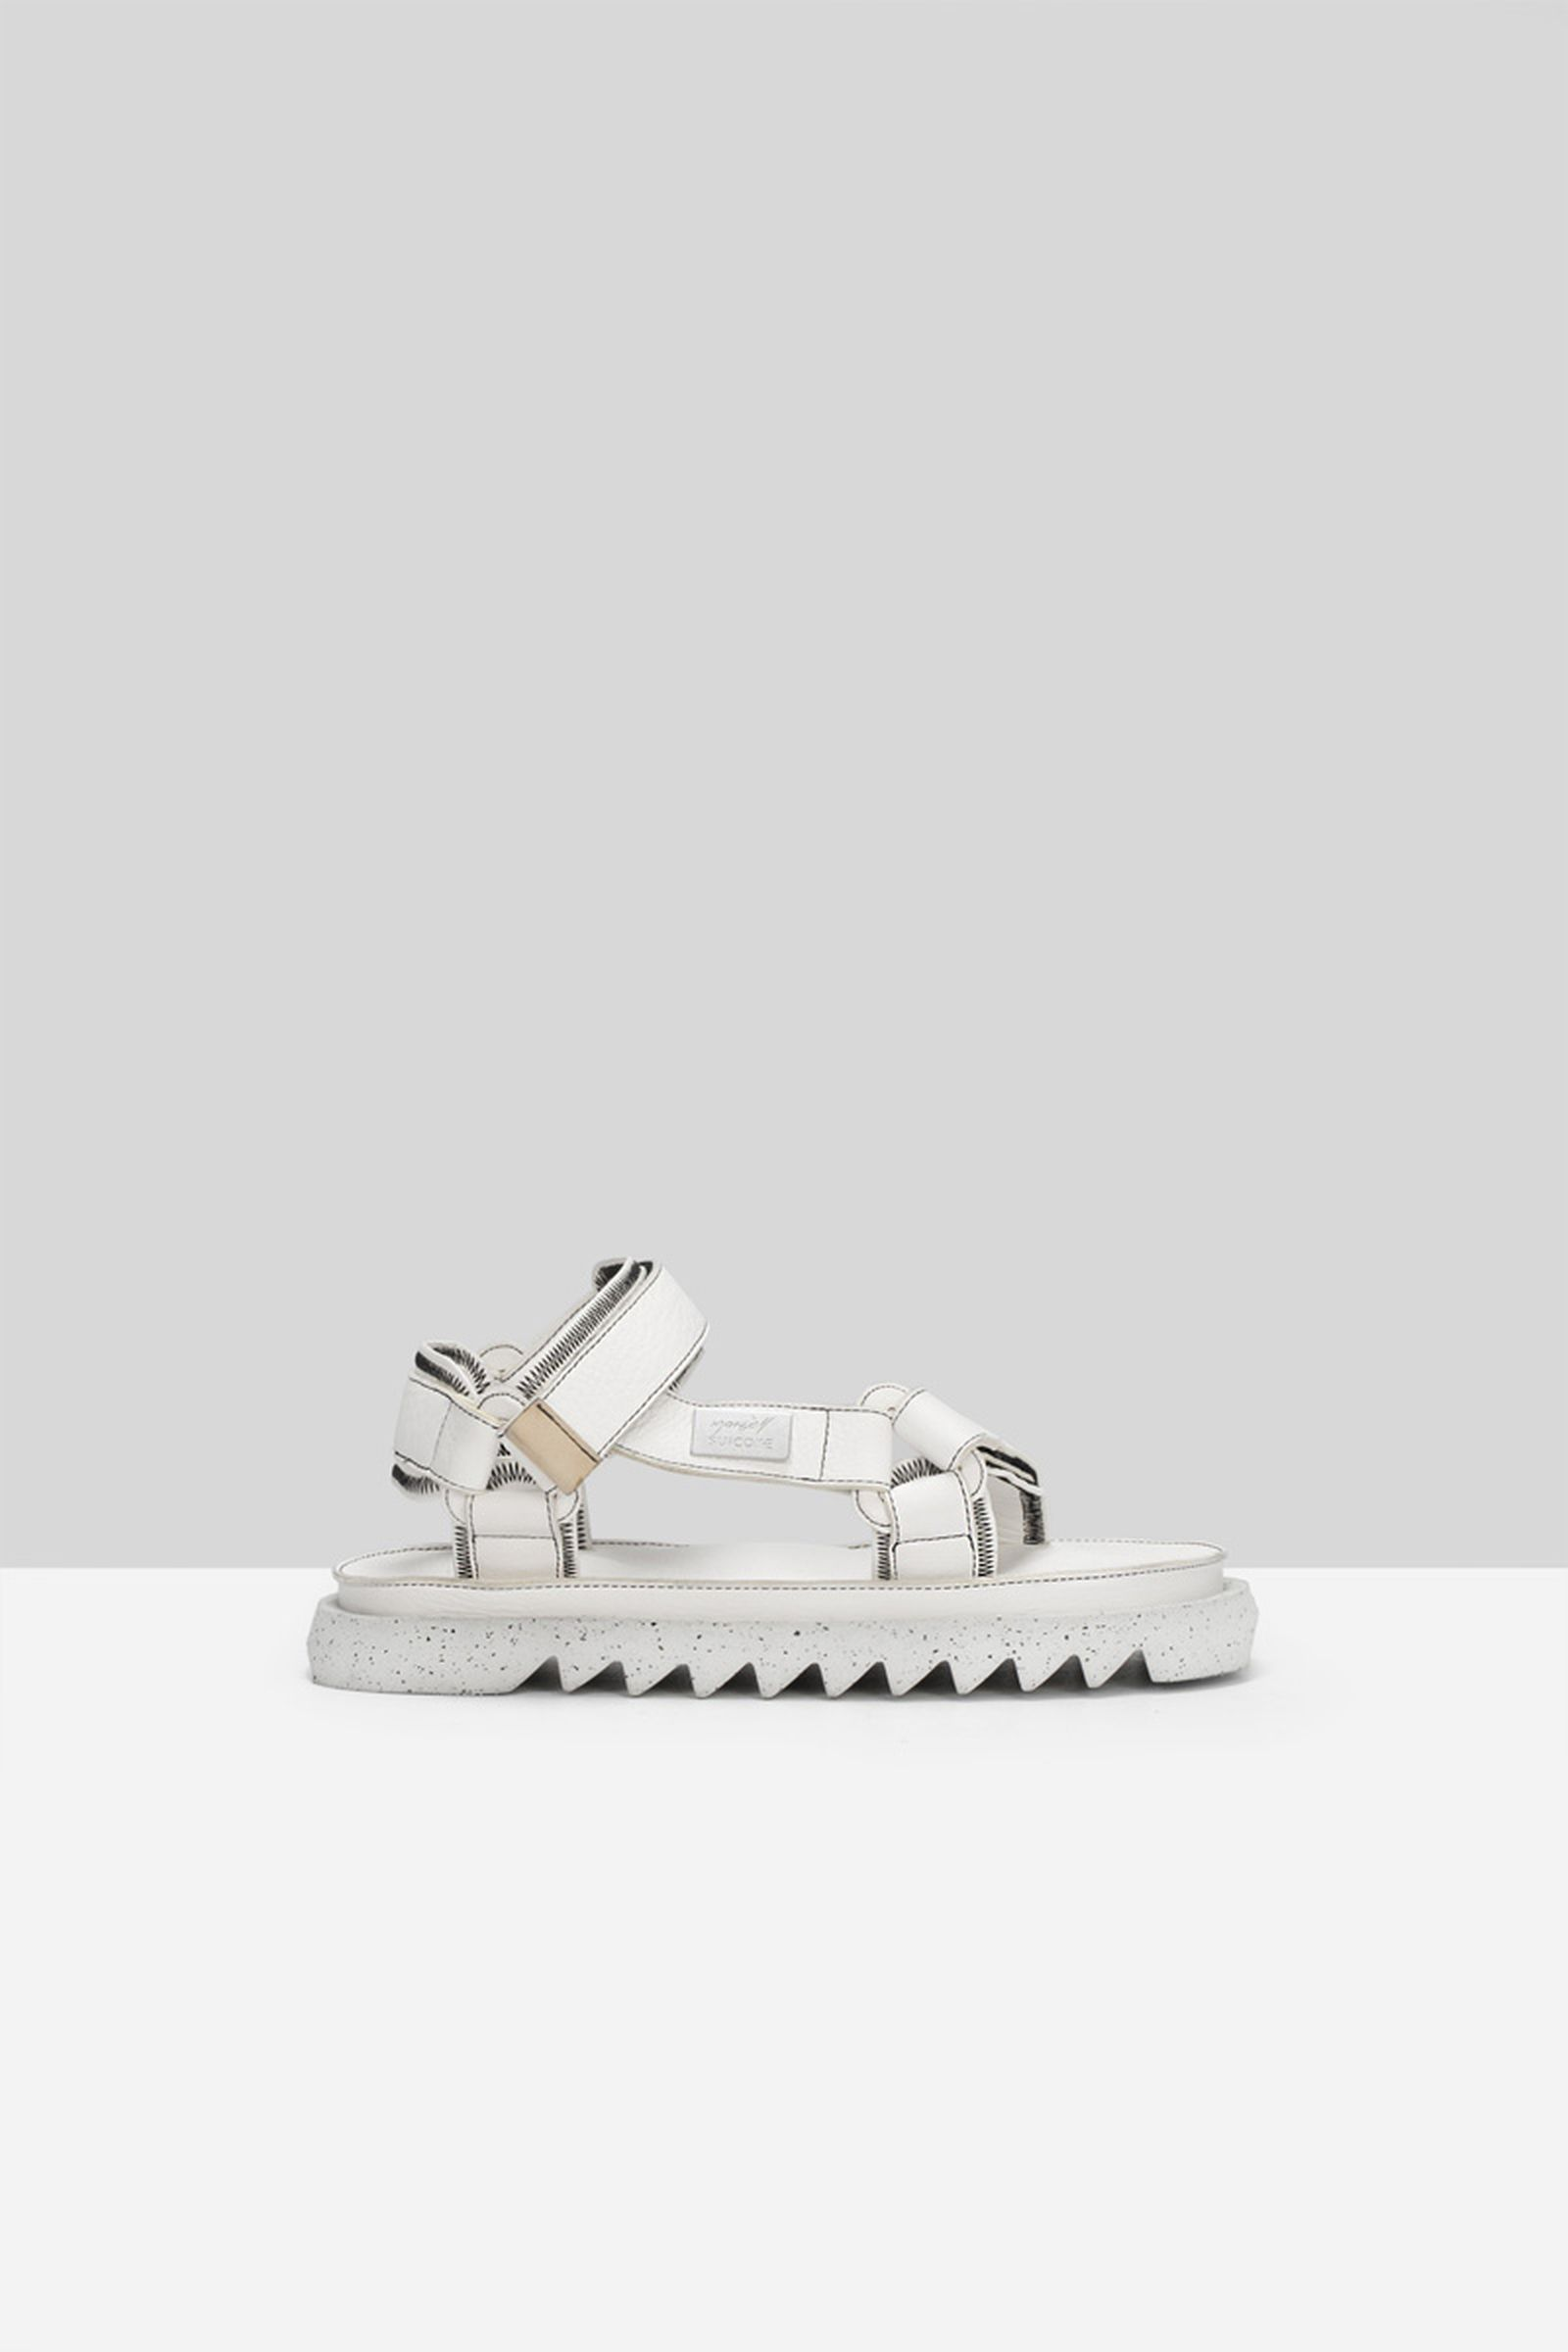 marsell-suicoke-ss21-collection-release-date-price-1